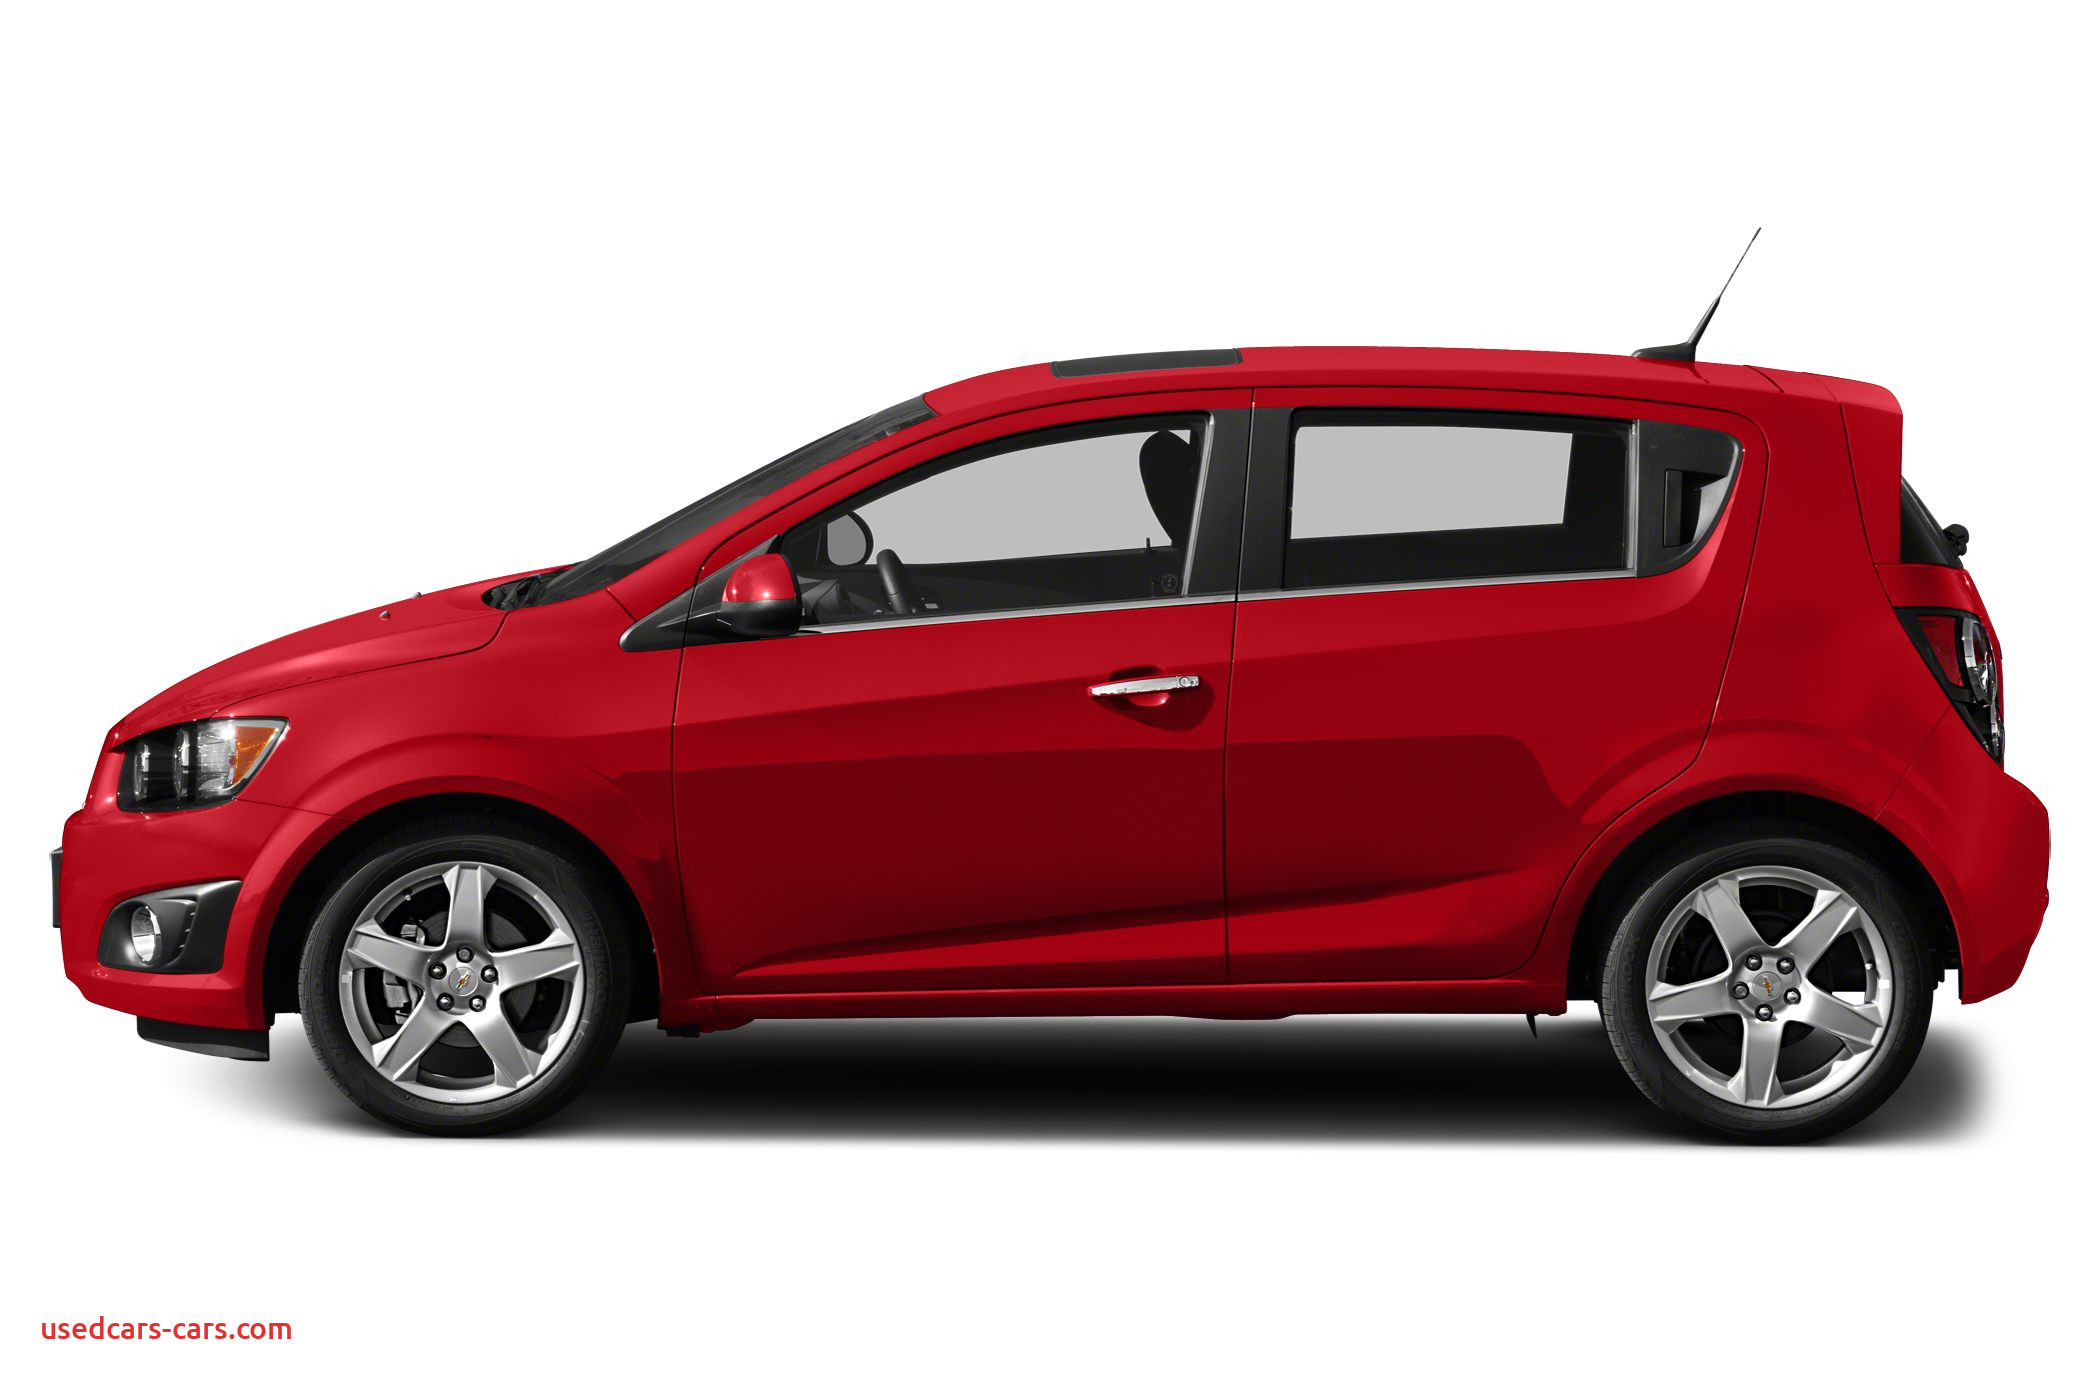 2015 Chevrolet sonic Hatchback Luxury 2015 Chevrolet sonic Price Photos Reviews Features